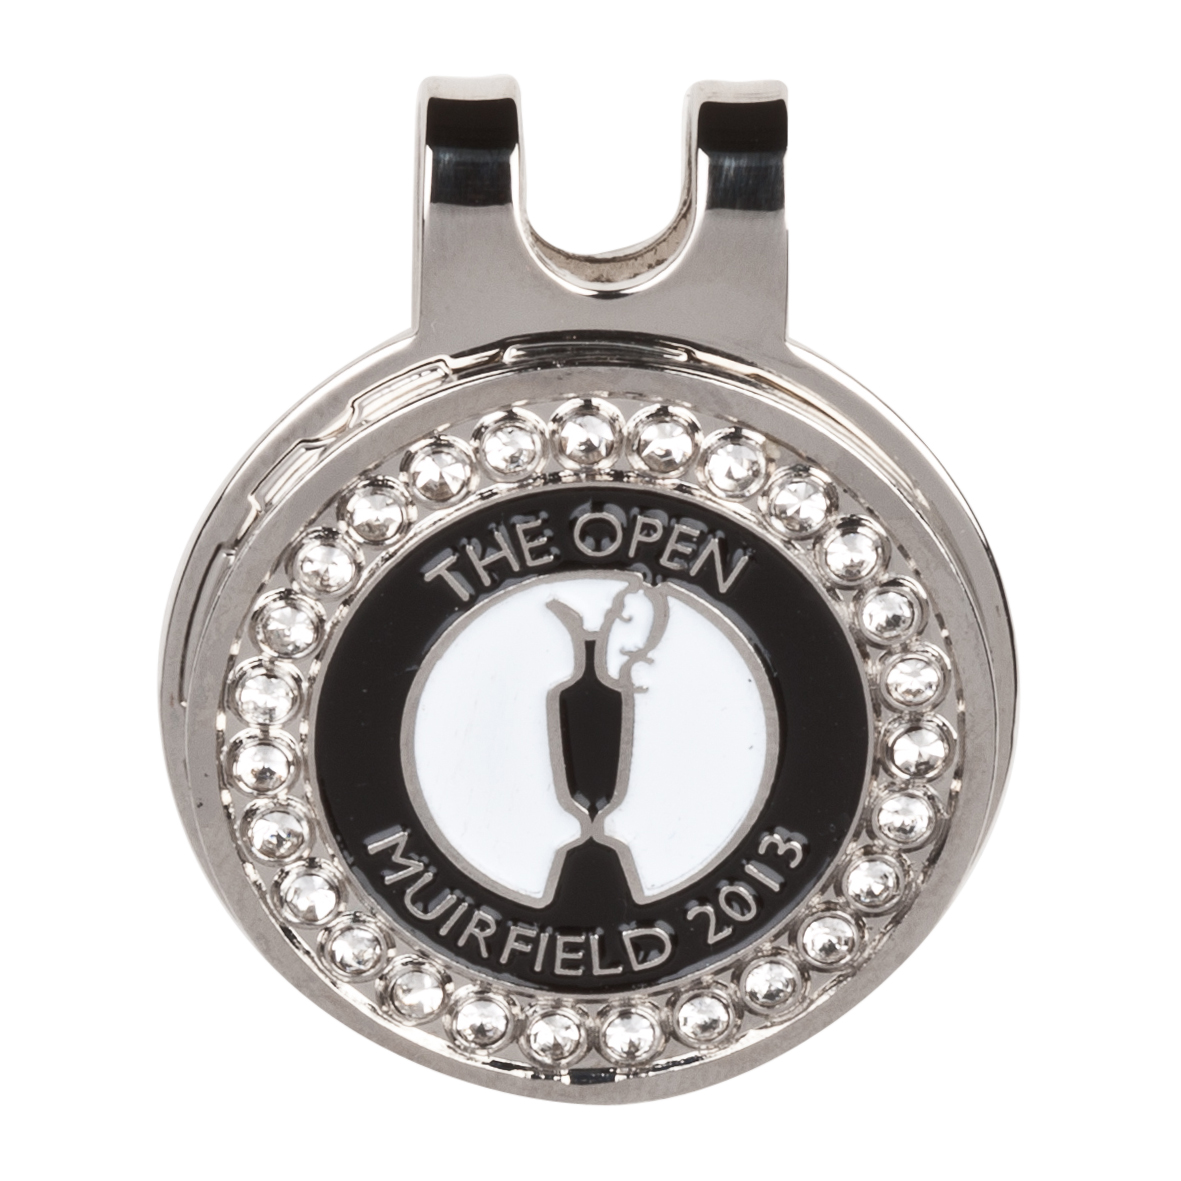 The Open Championship 2013 Muirfield Bling Cap Clip Black